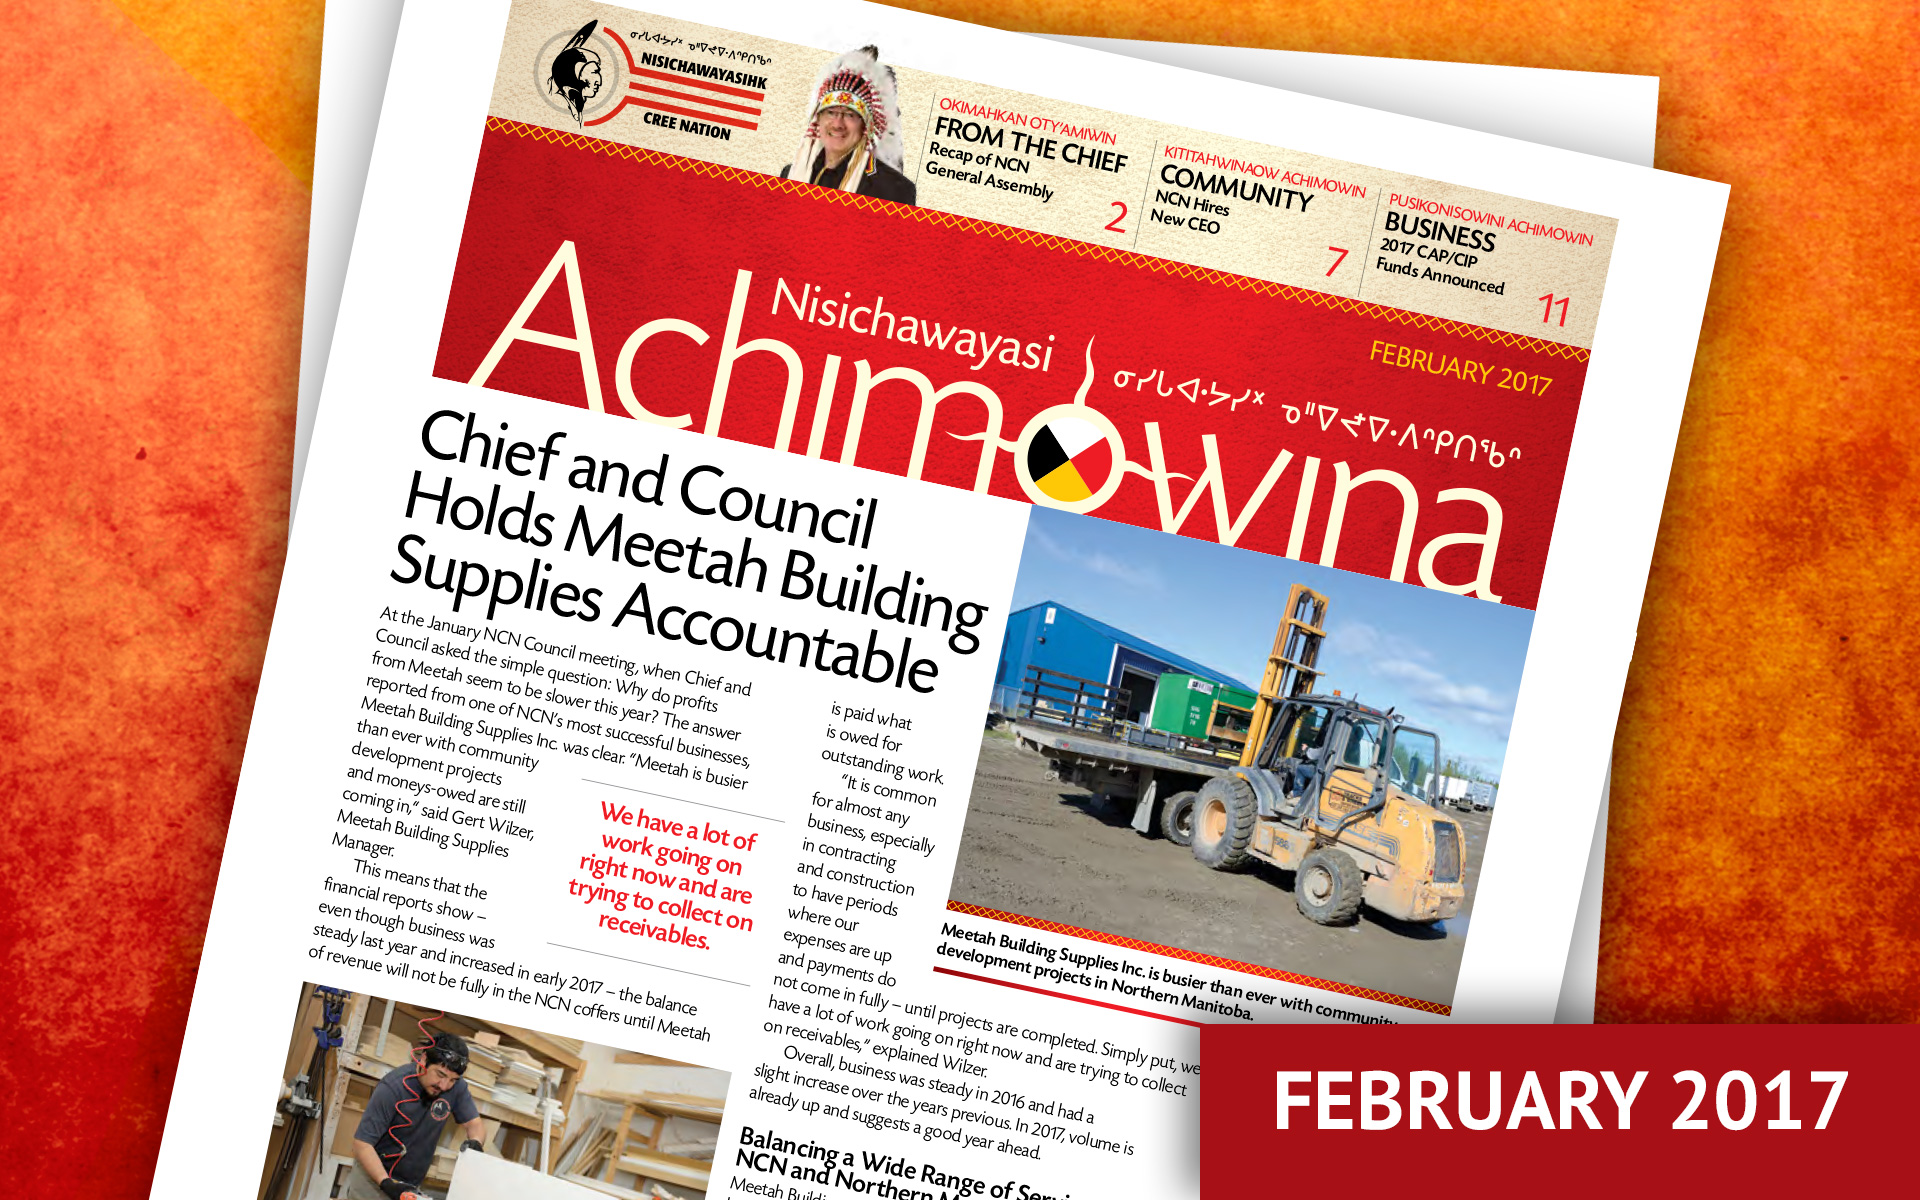 Achimowina February 2017 - Chief and Council Hold Meetah Building Supplies Accountable